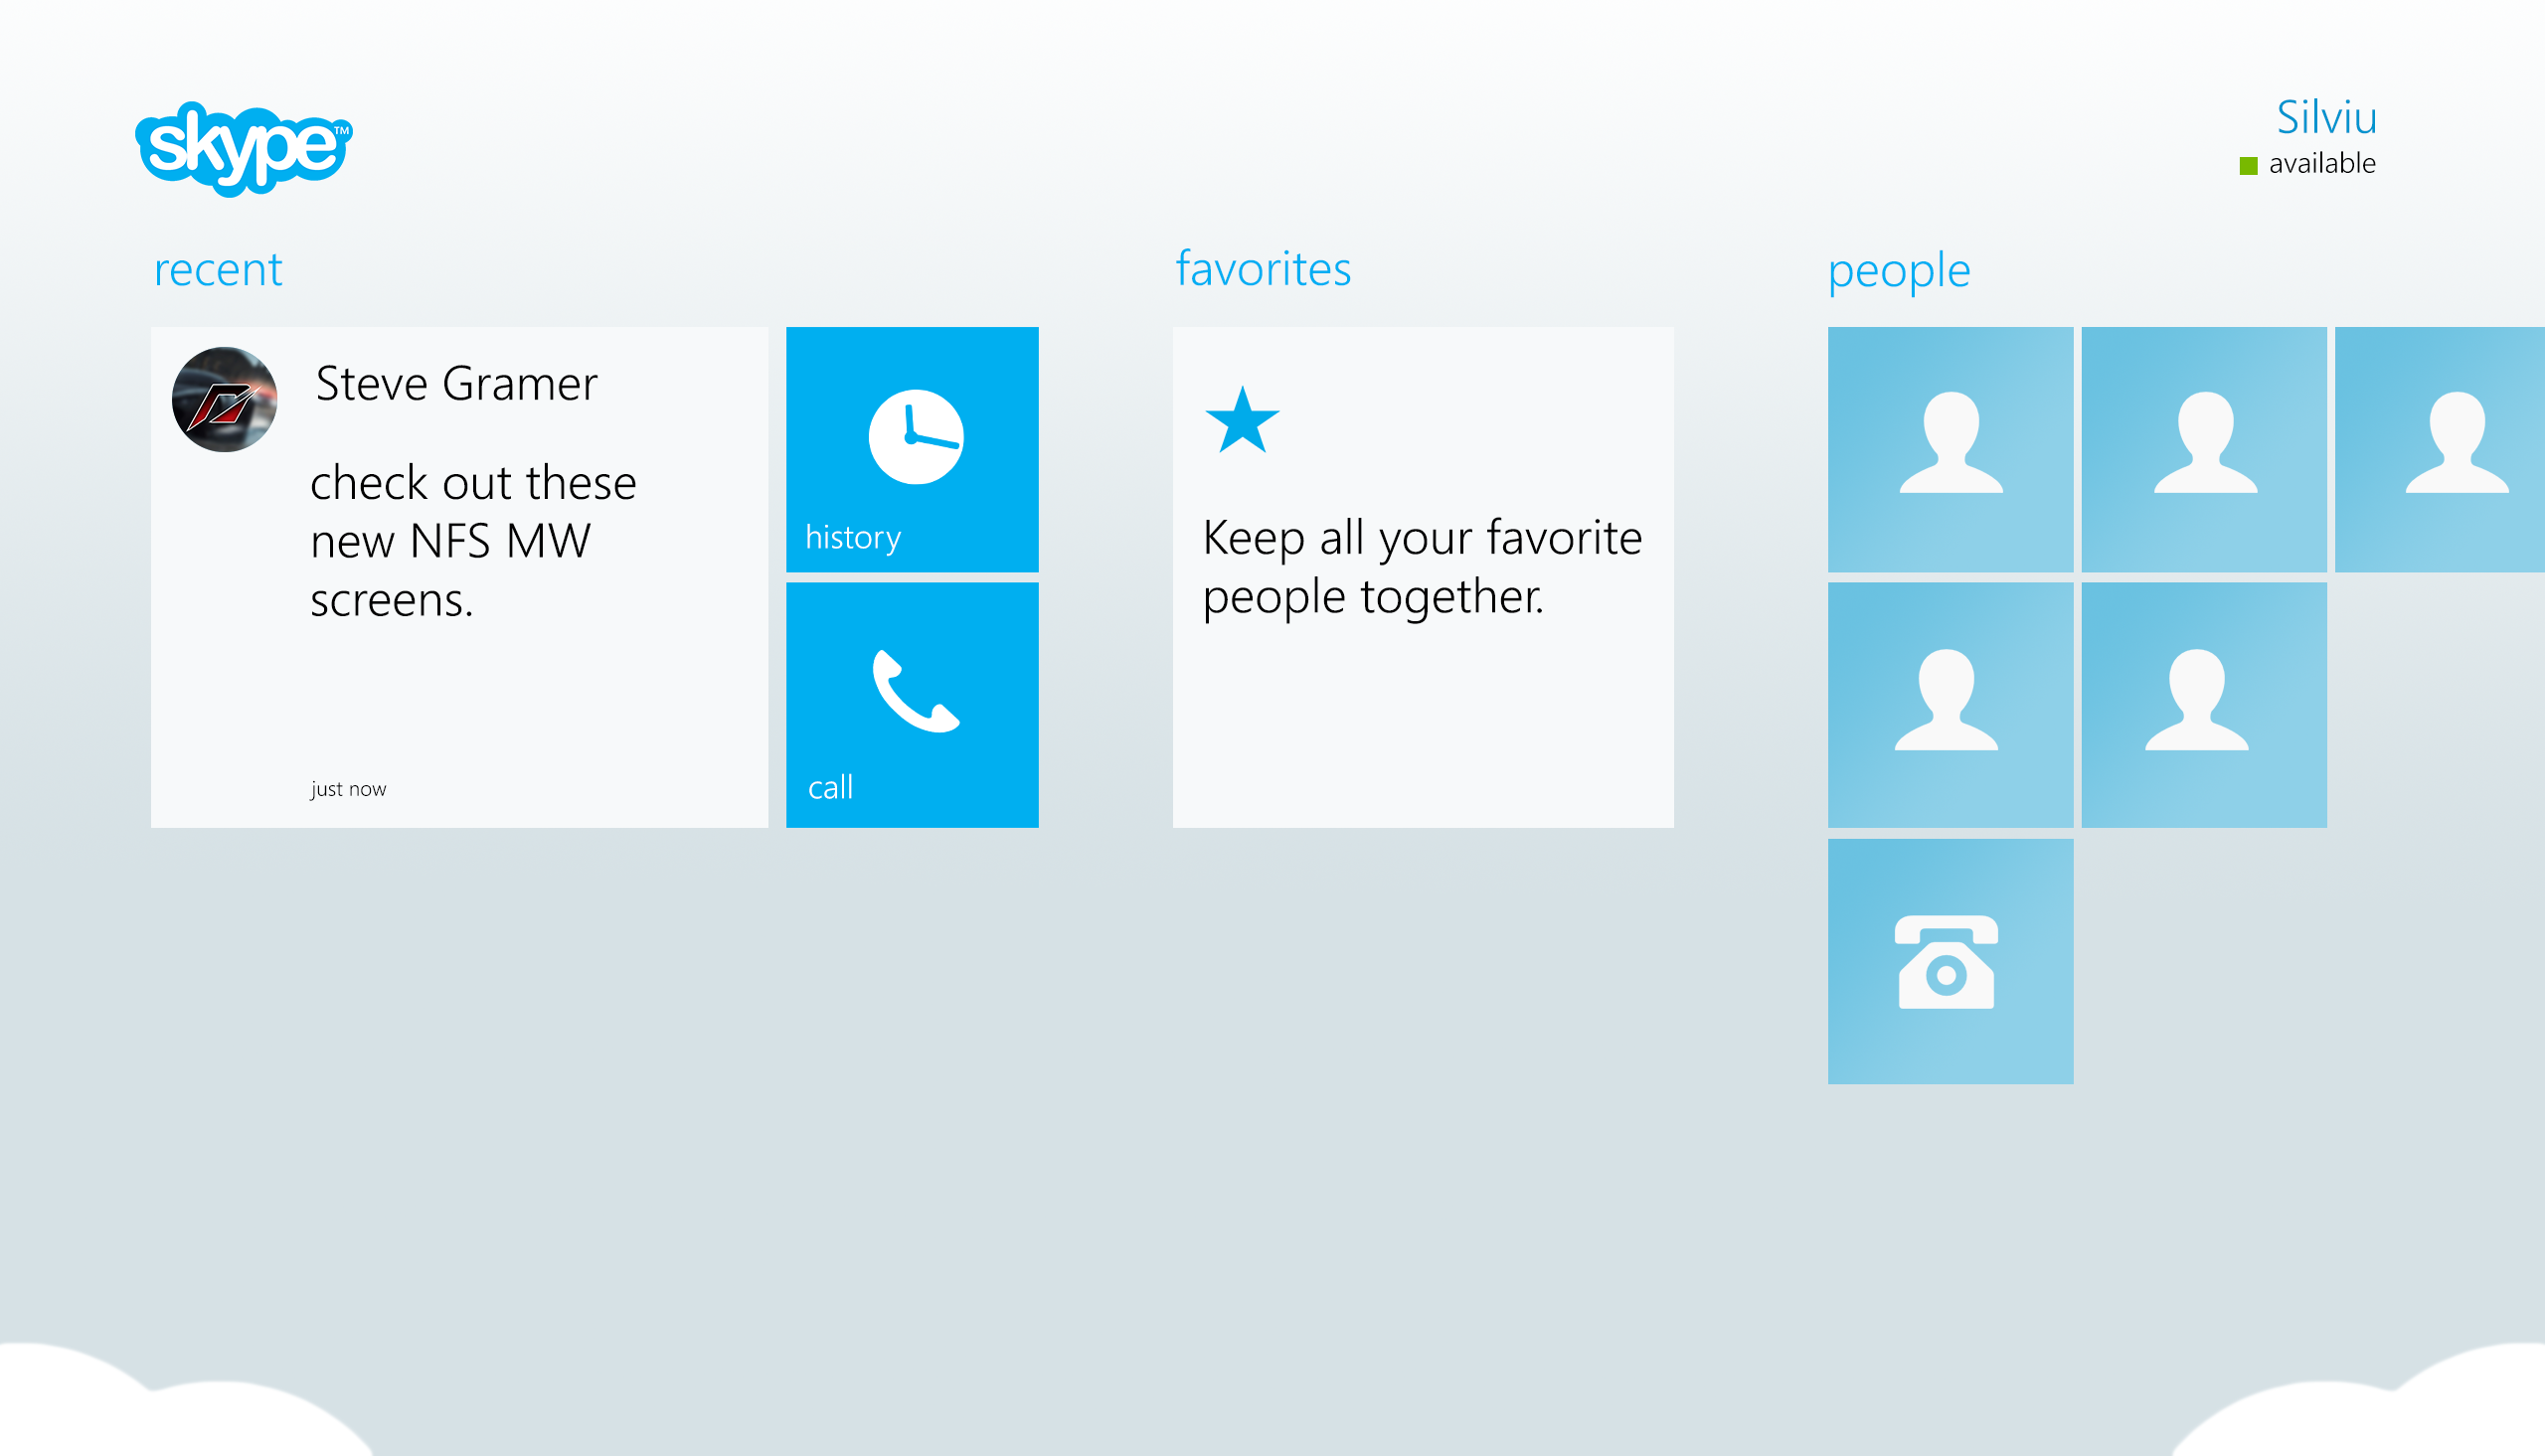 Skype for Modern UI by Brebenel-Silviu